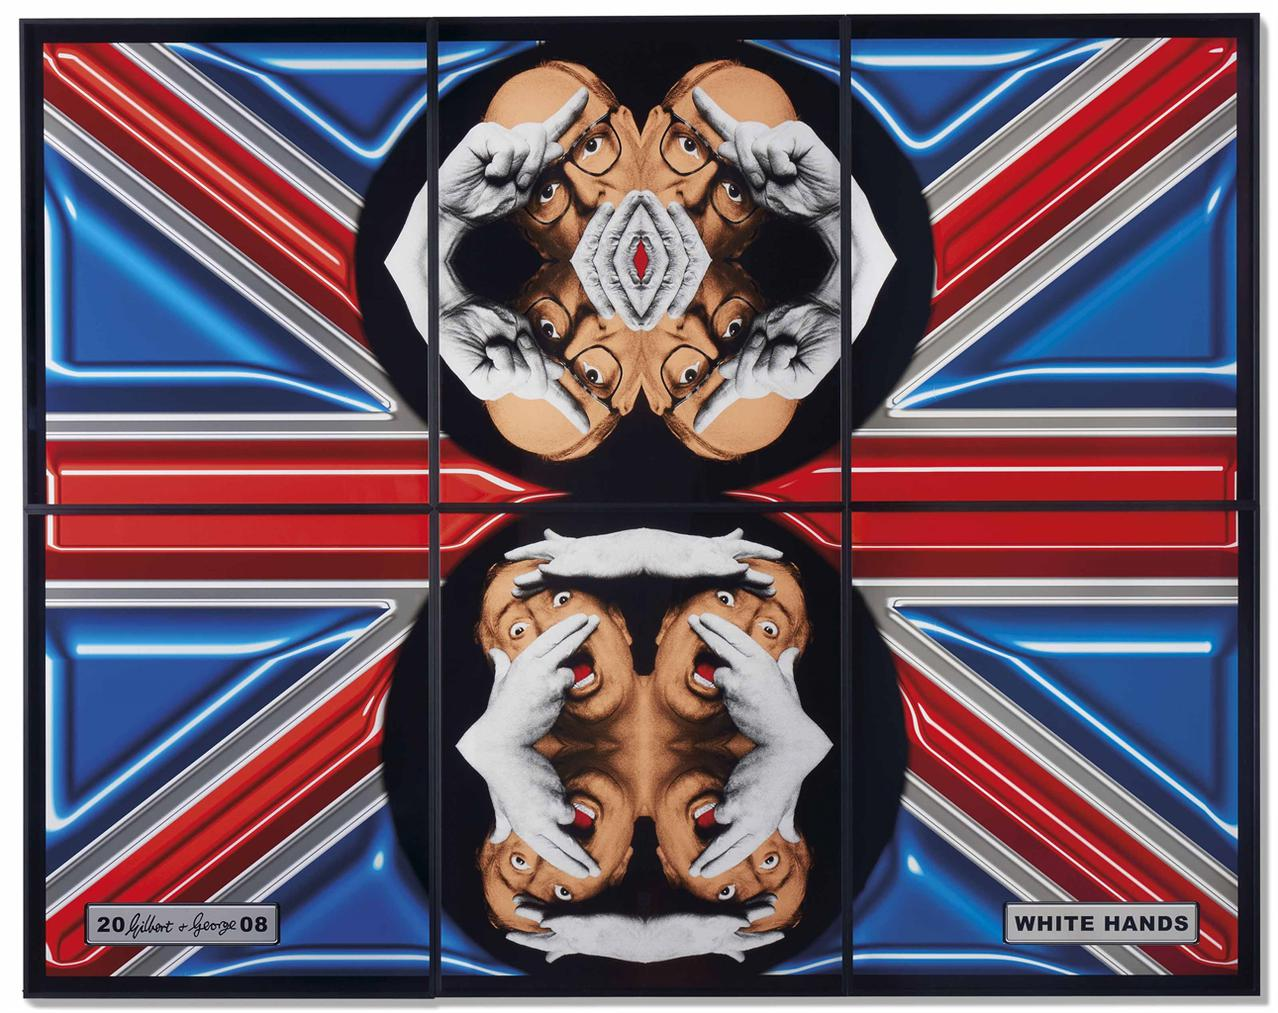 Gilbert and George-White Hands-2008